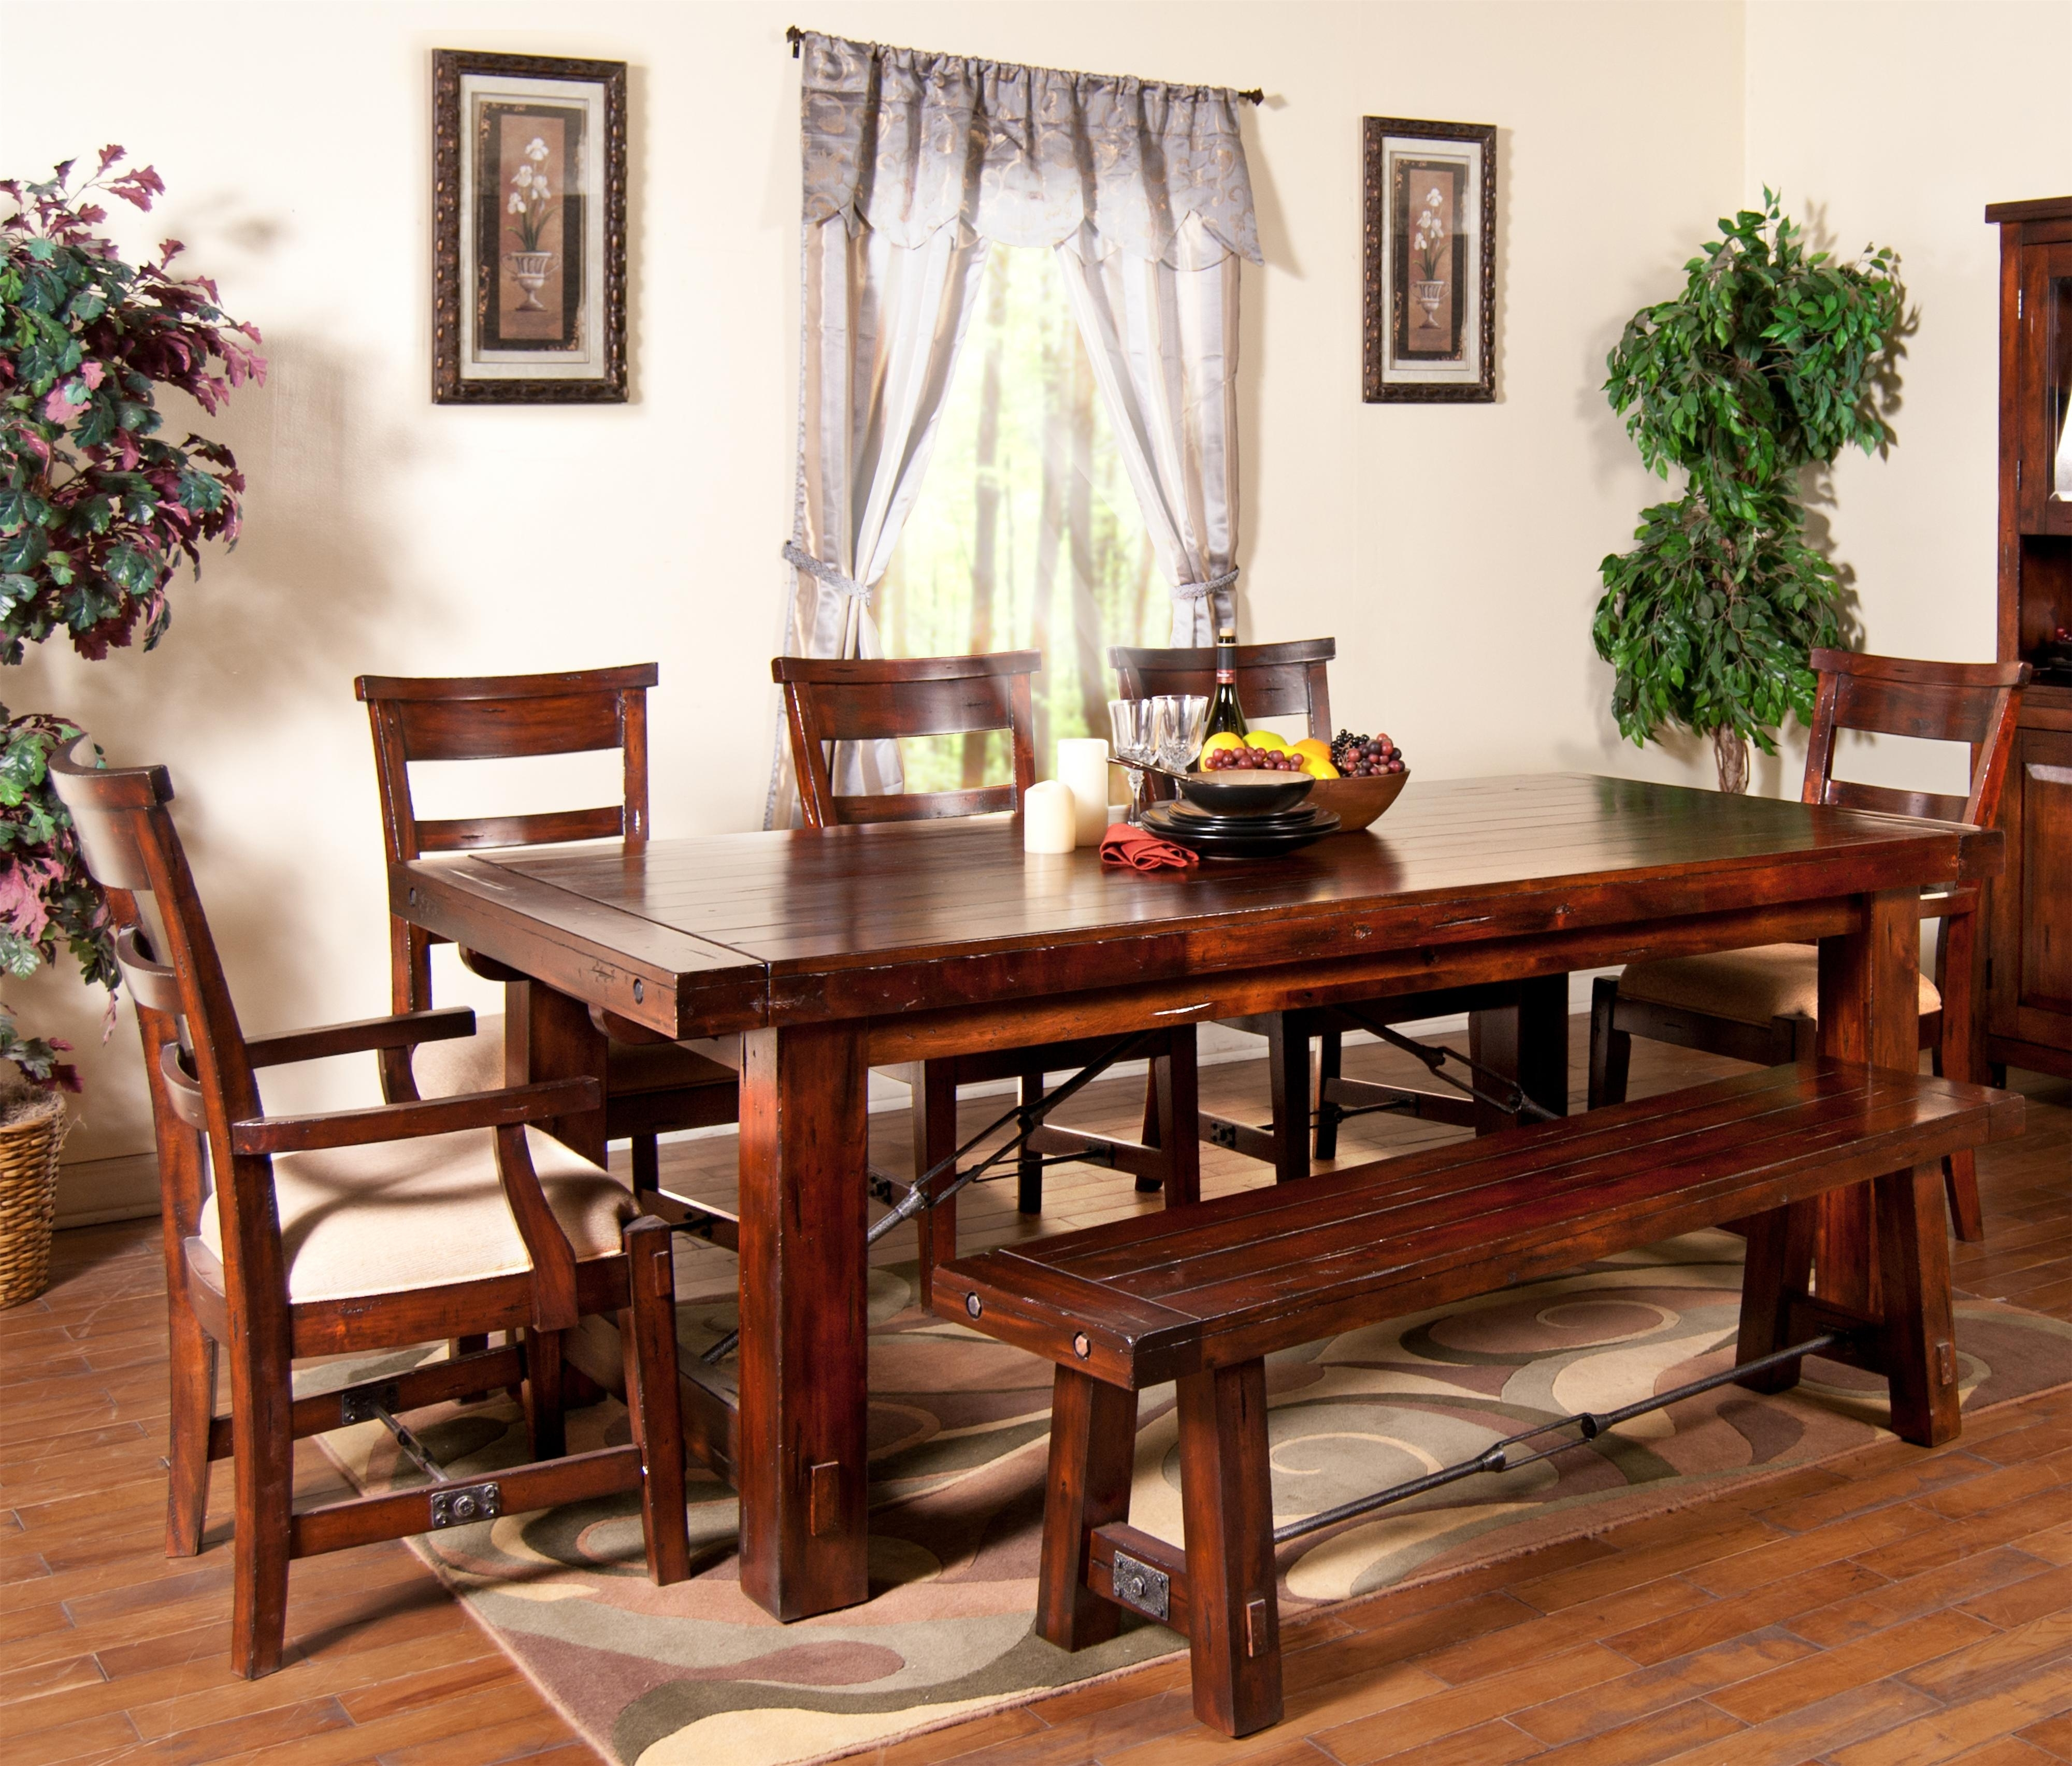 7 Piece Extension Table With Chairs And Bench Setsunny Designs Inside Most Recent Craftsman 7 Piece Rectangle Extension Dining Sets With Side Chairs (Image 2 of 20)